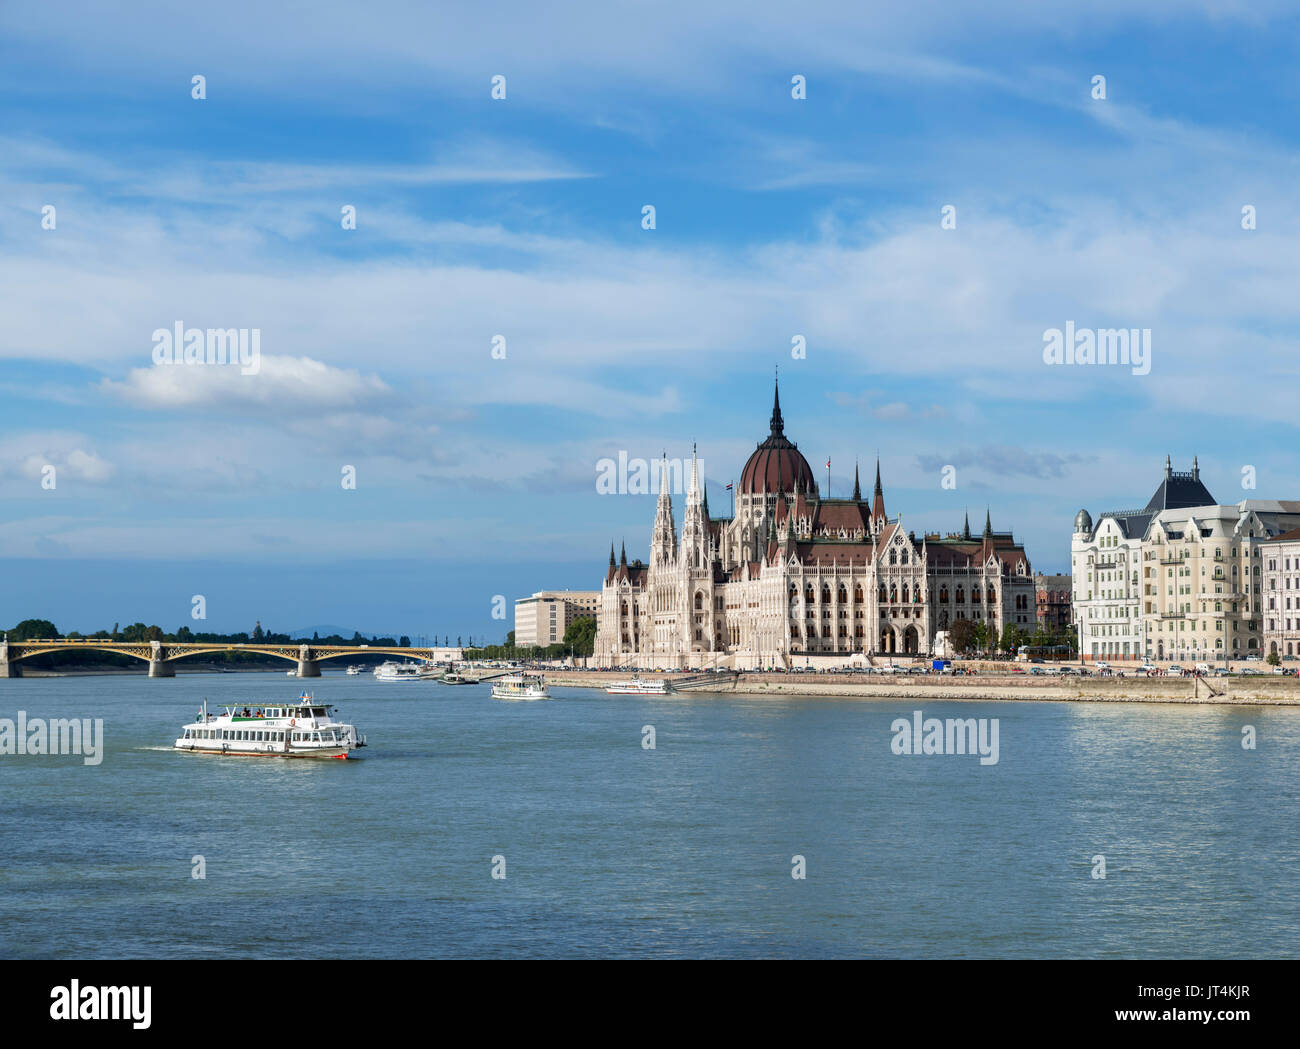 Tour boat in front of the Hungarian Parliament building, Budapest, Hungary - Stock Image